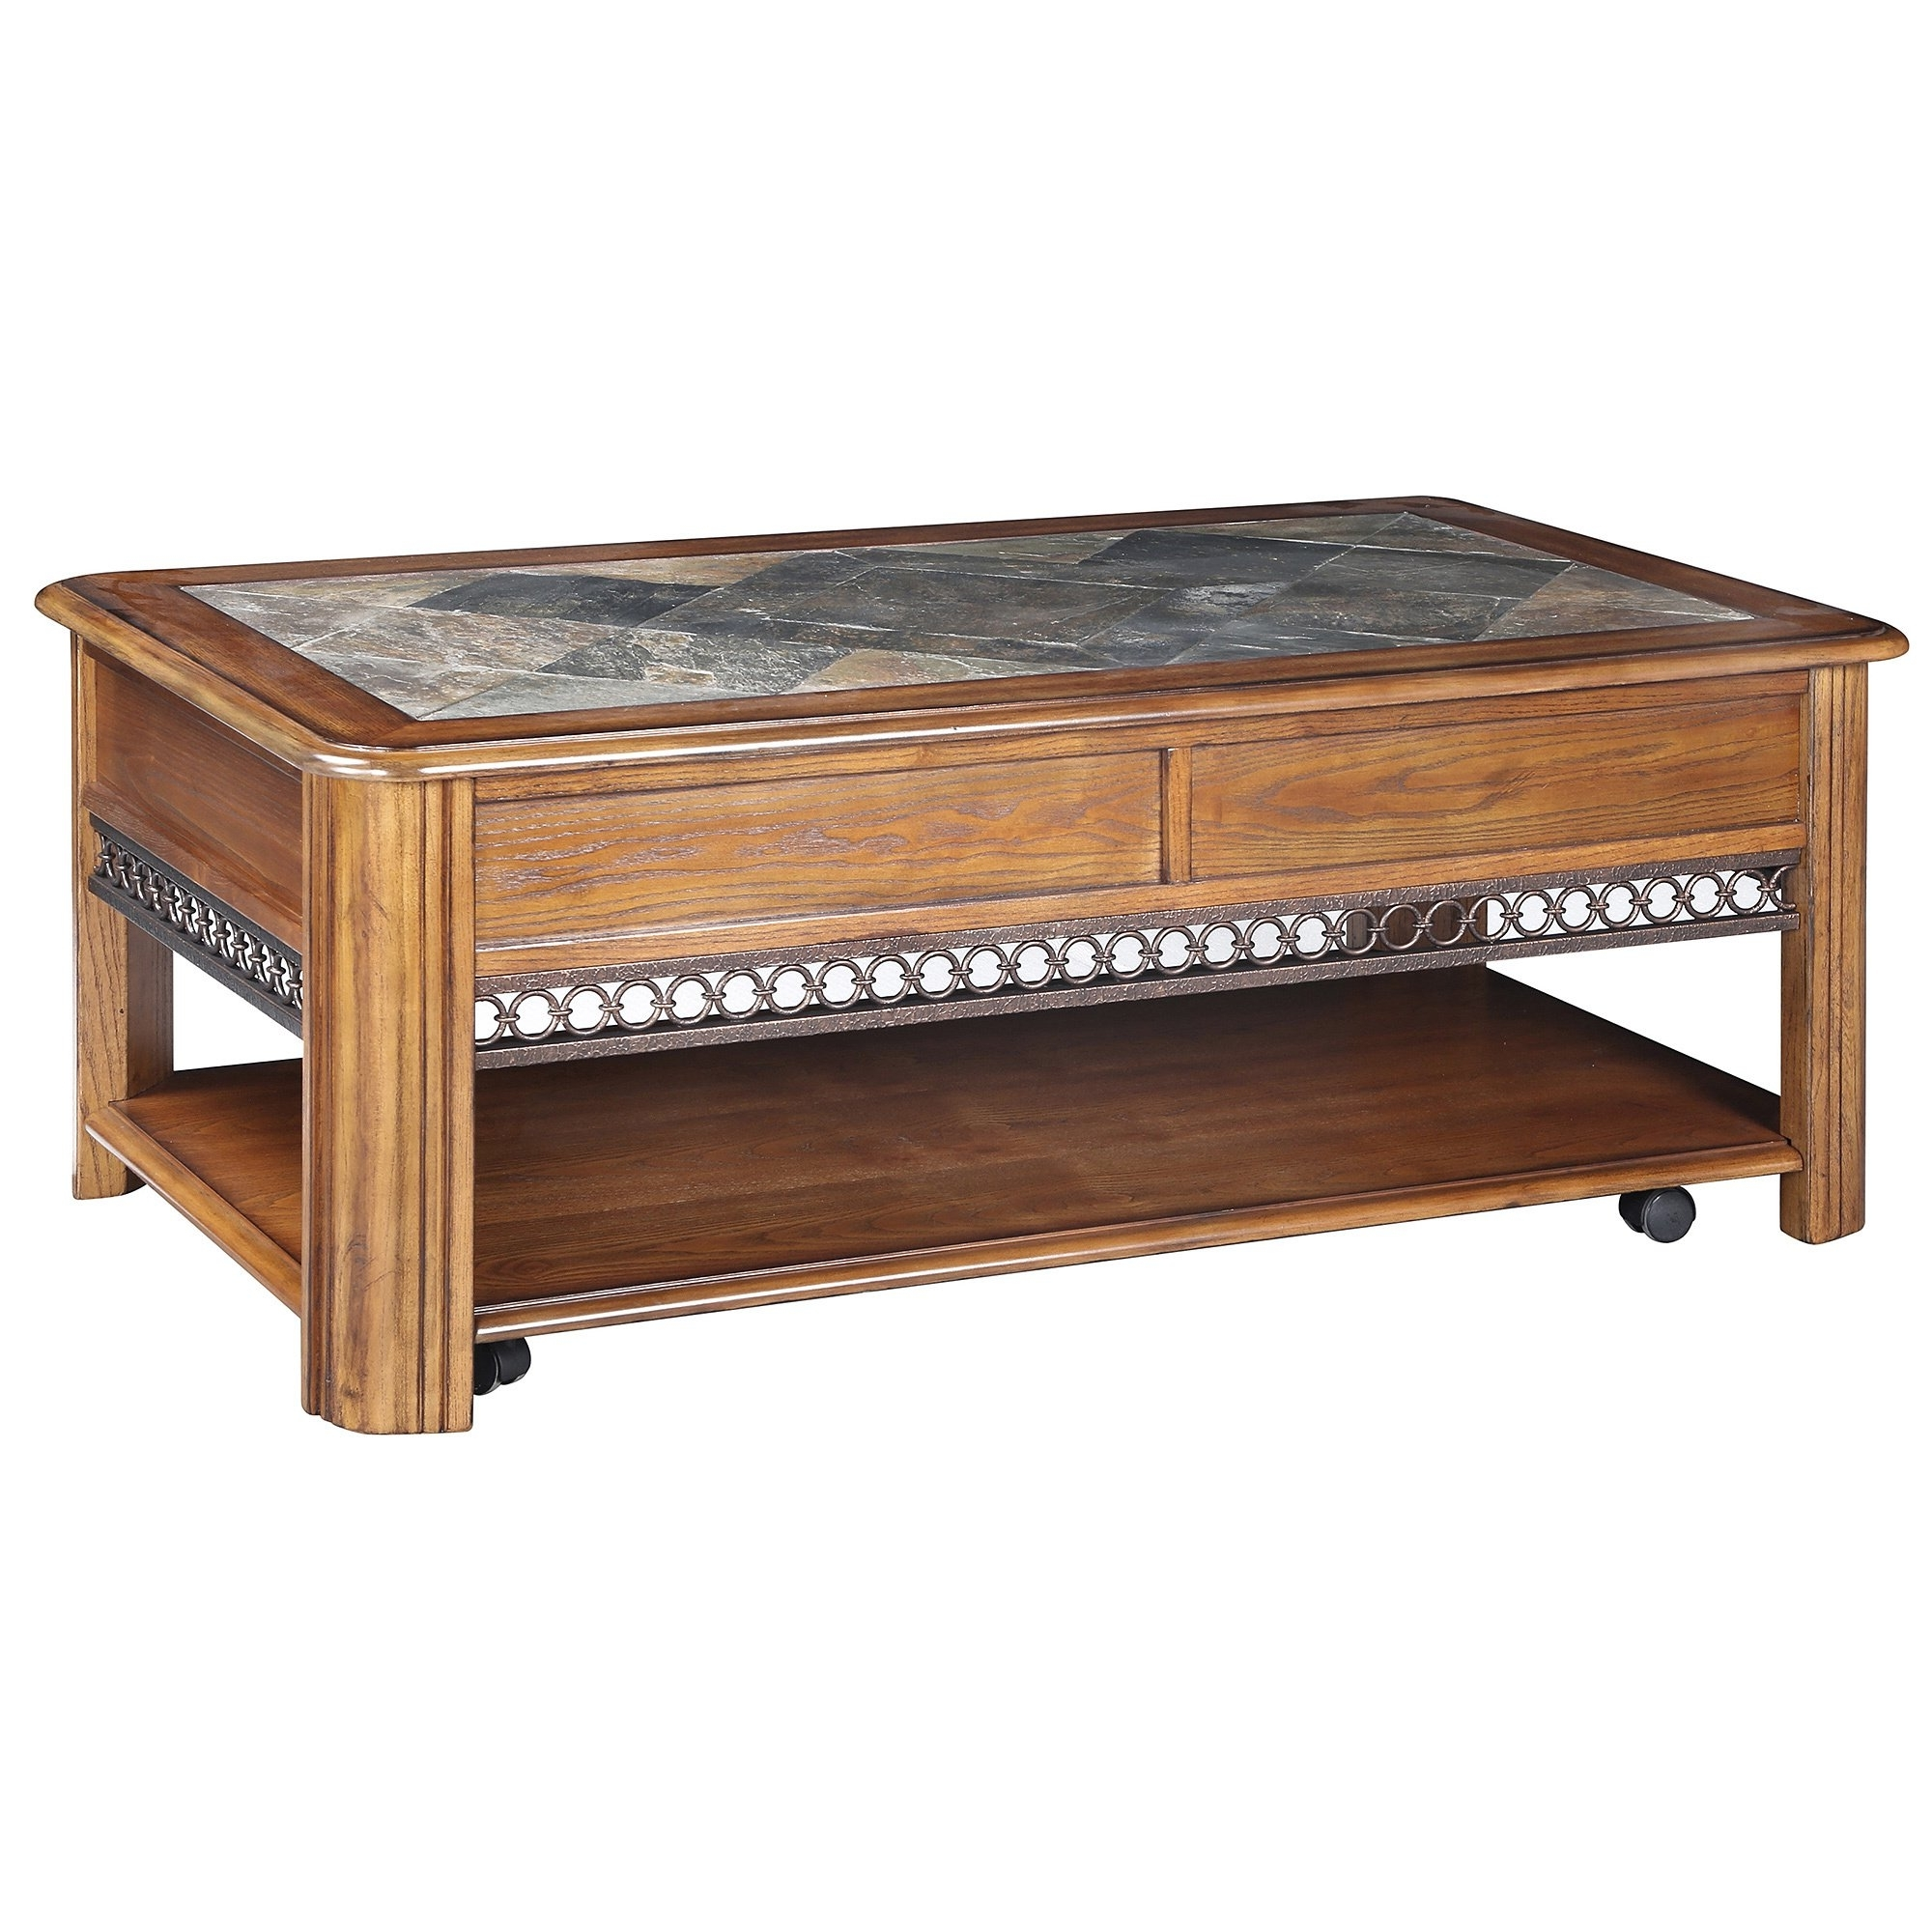 Shop Madison Rustic Warm Nutmeg Lift Top Coffee Table With Casters Regarding Well Liked Autumn Cocktail Tables With Casters (View 2 of 20)